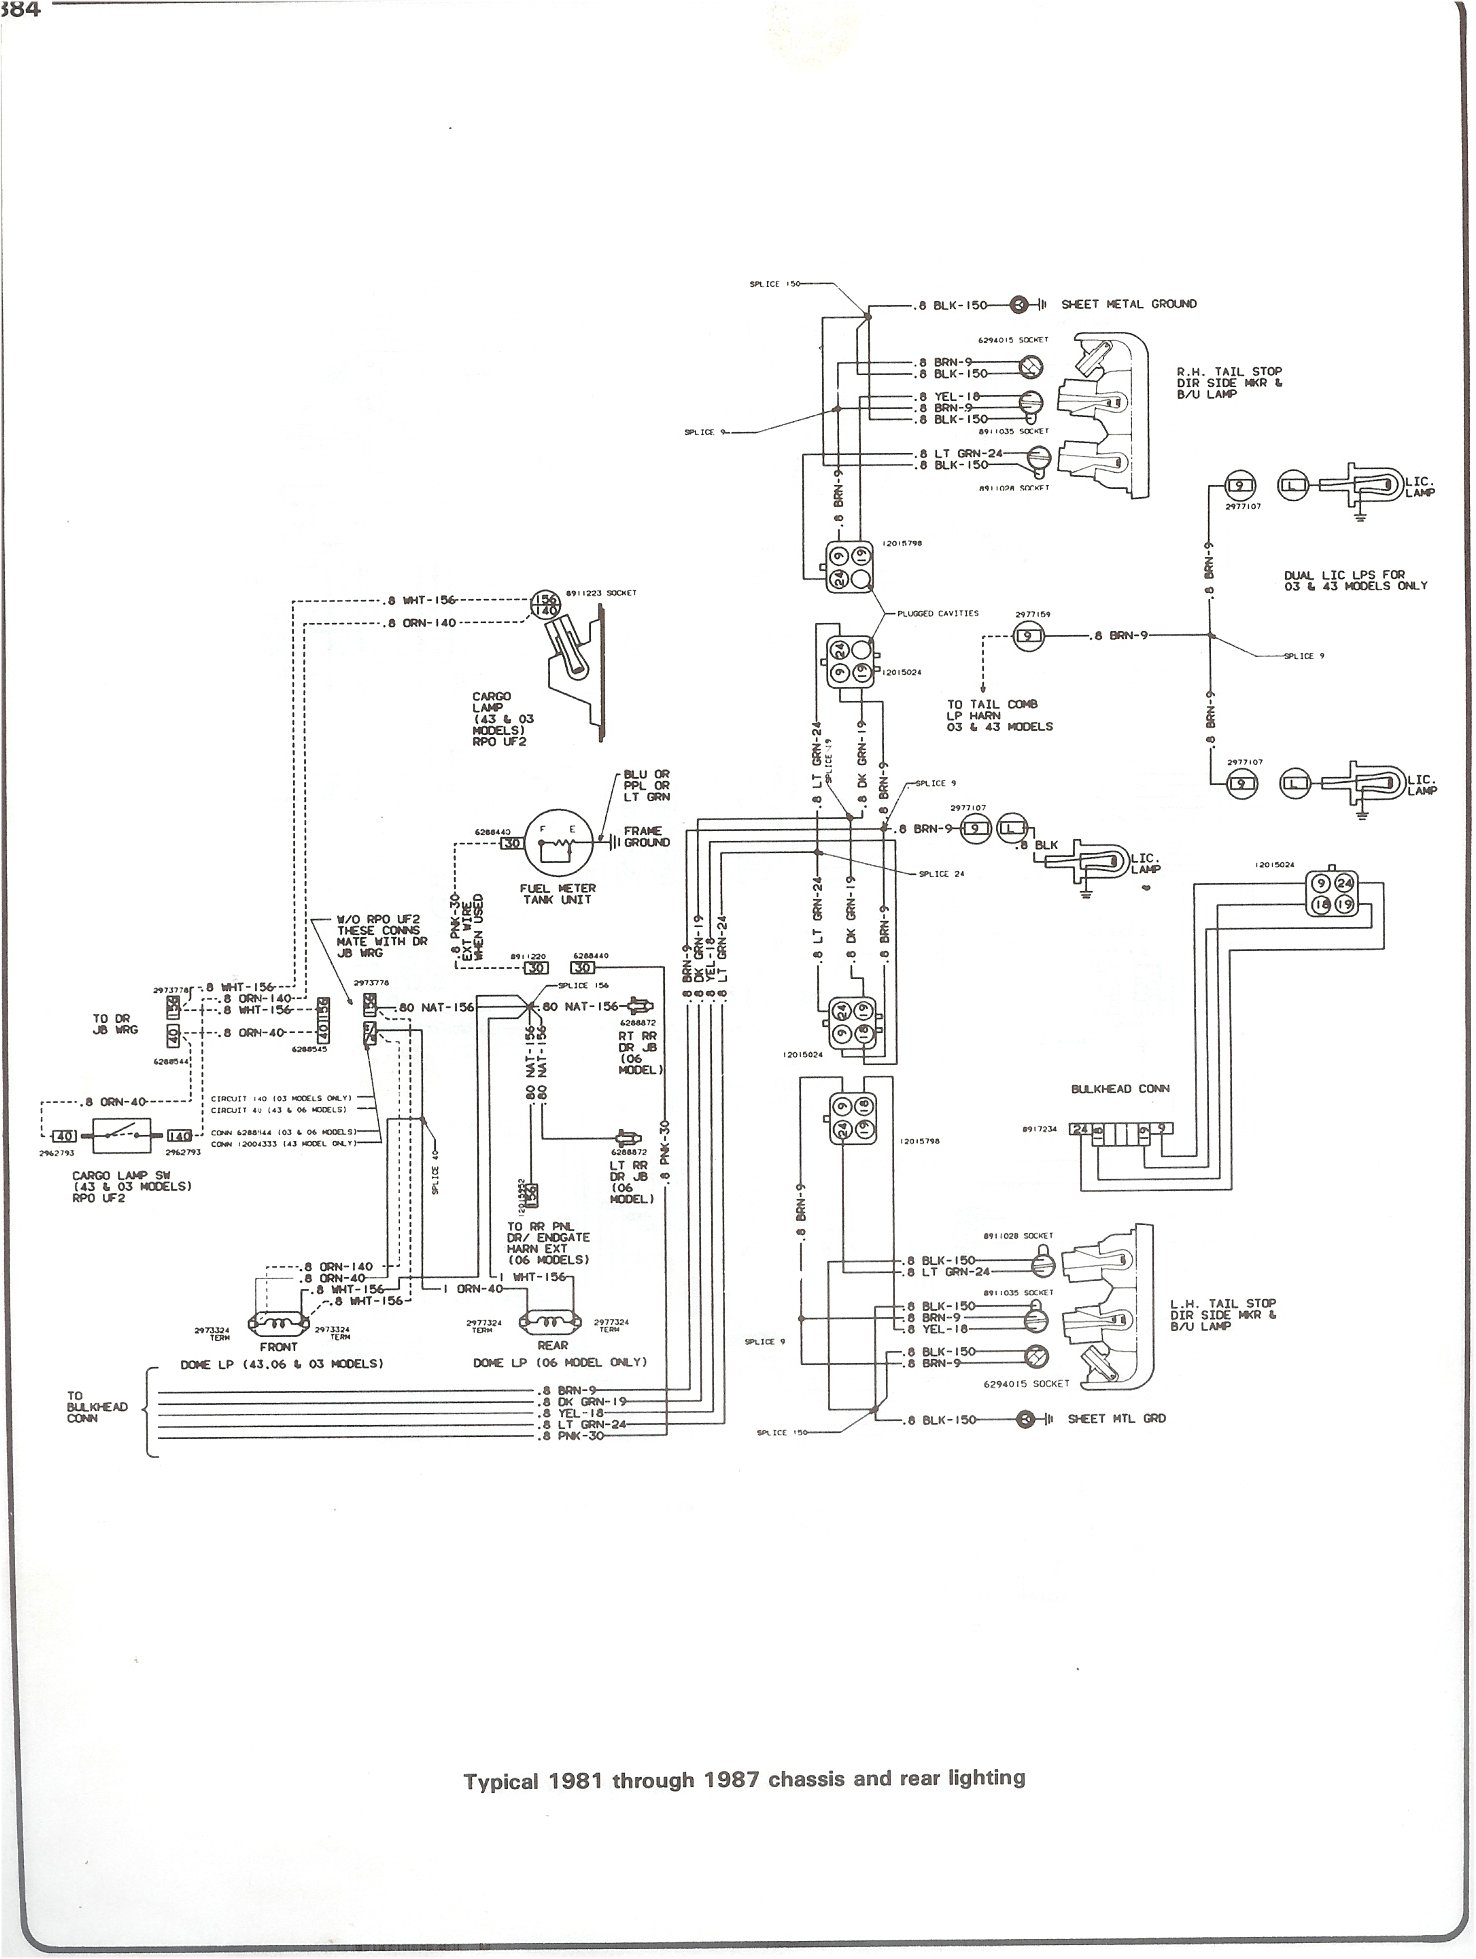 Chevy Silverado Drawing At Free For Personal Use Steering Diagram 1476x1959 Complete 73 87 Wiring Diagrams